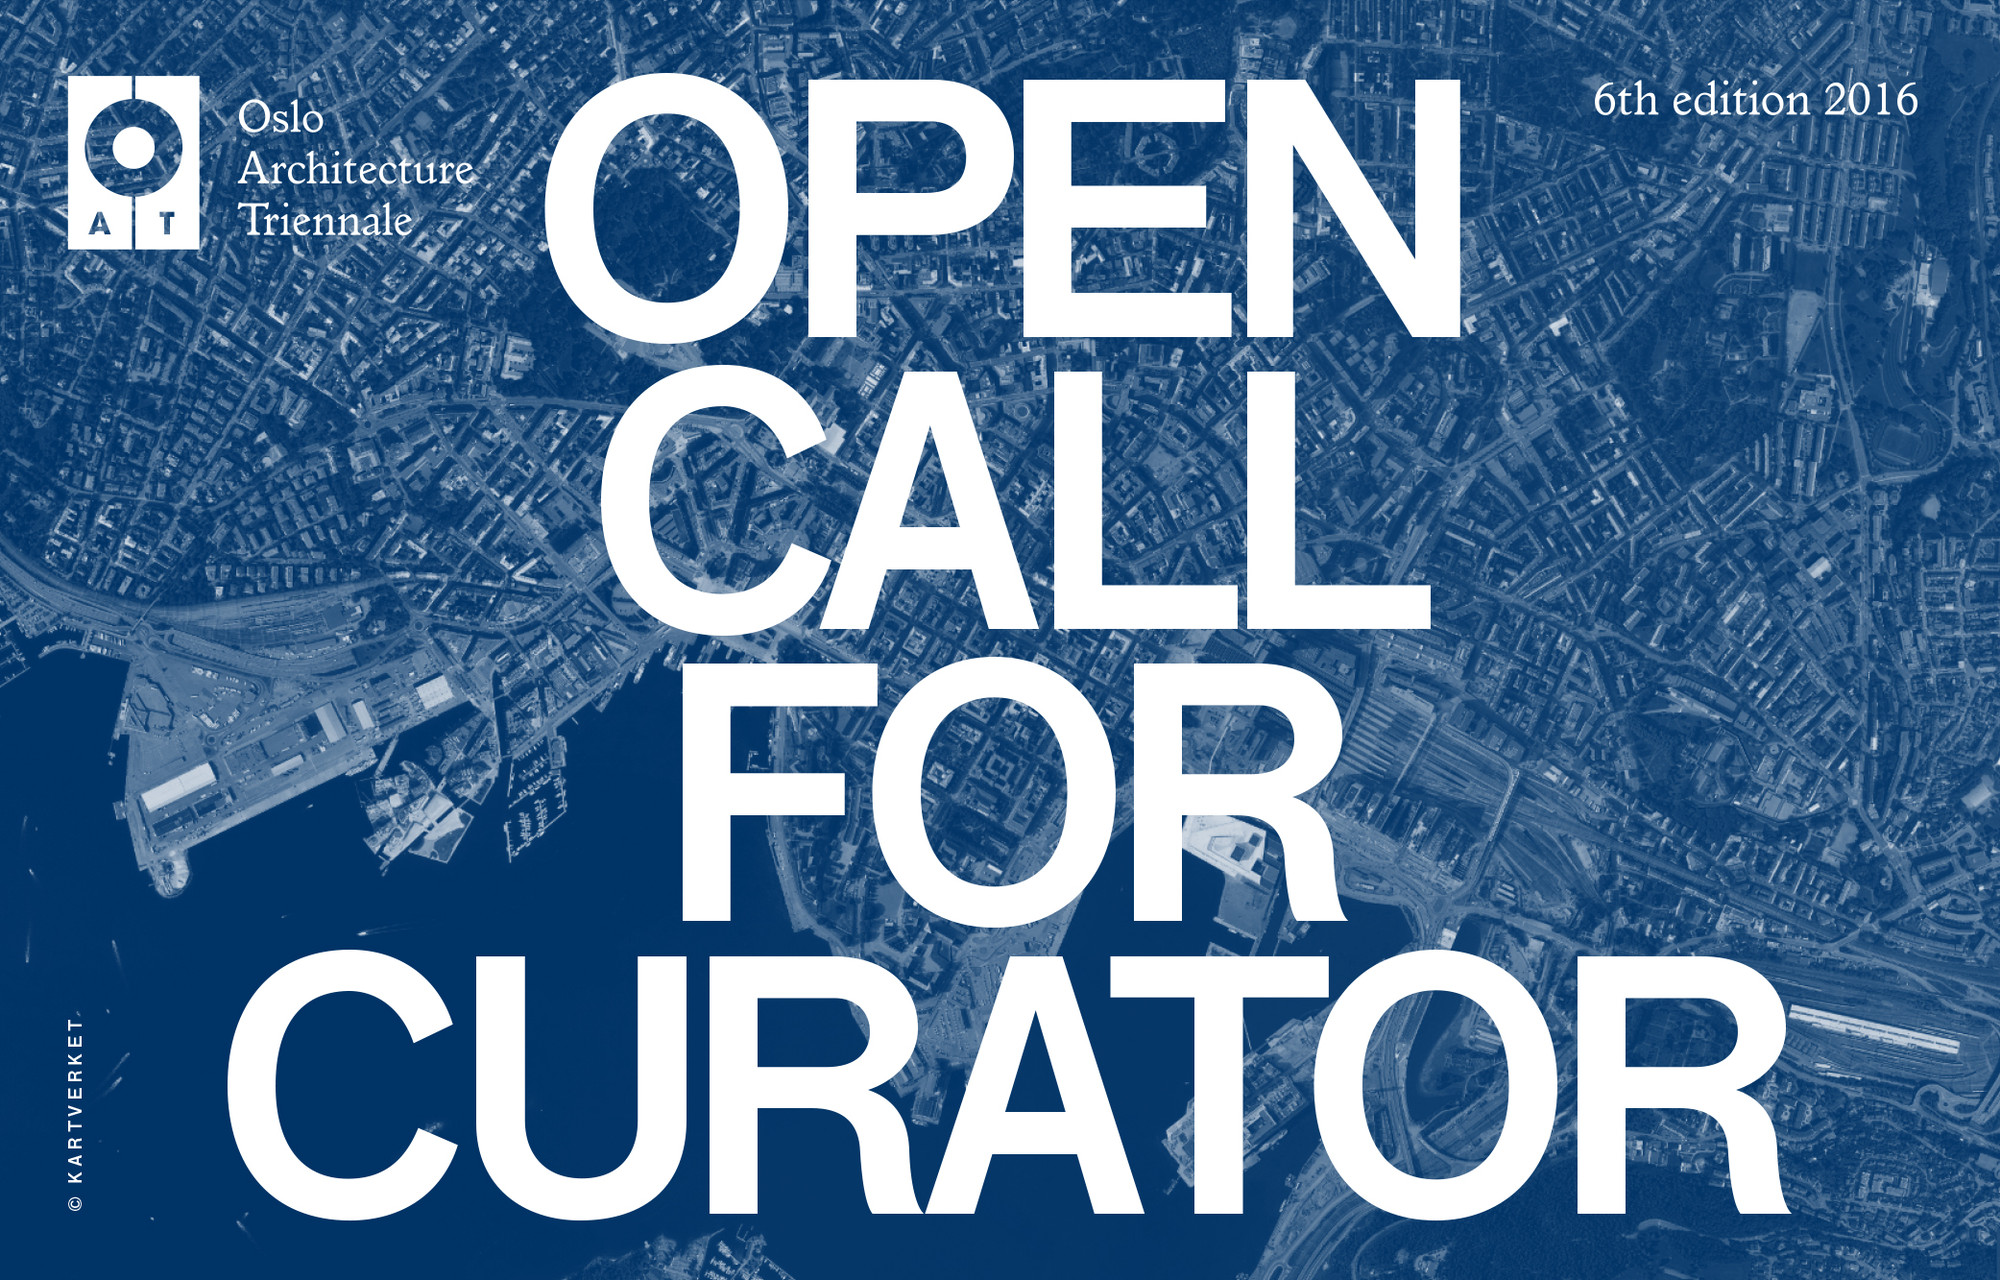 Open Call for Curator: Oslo Architecture Triennale 2016, Courtesy of Oslo Architecture Triennale